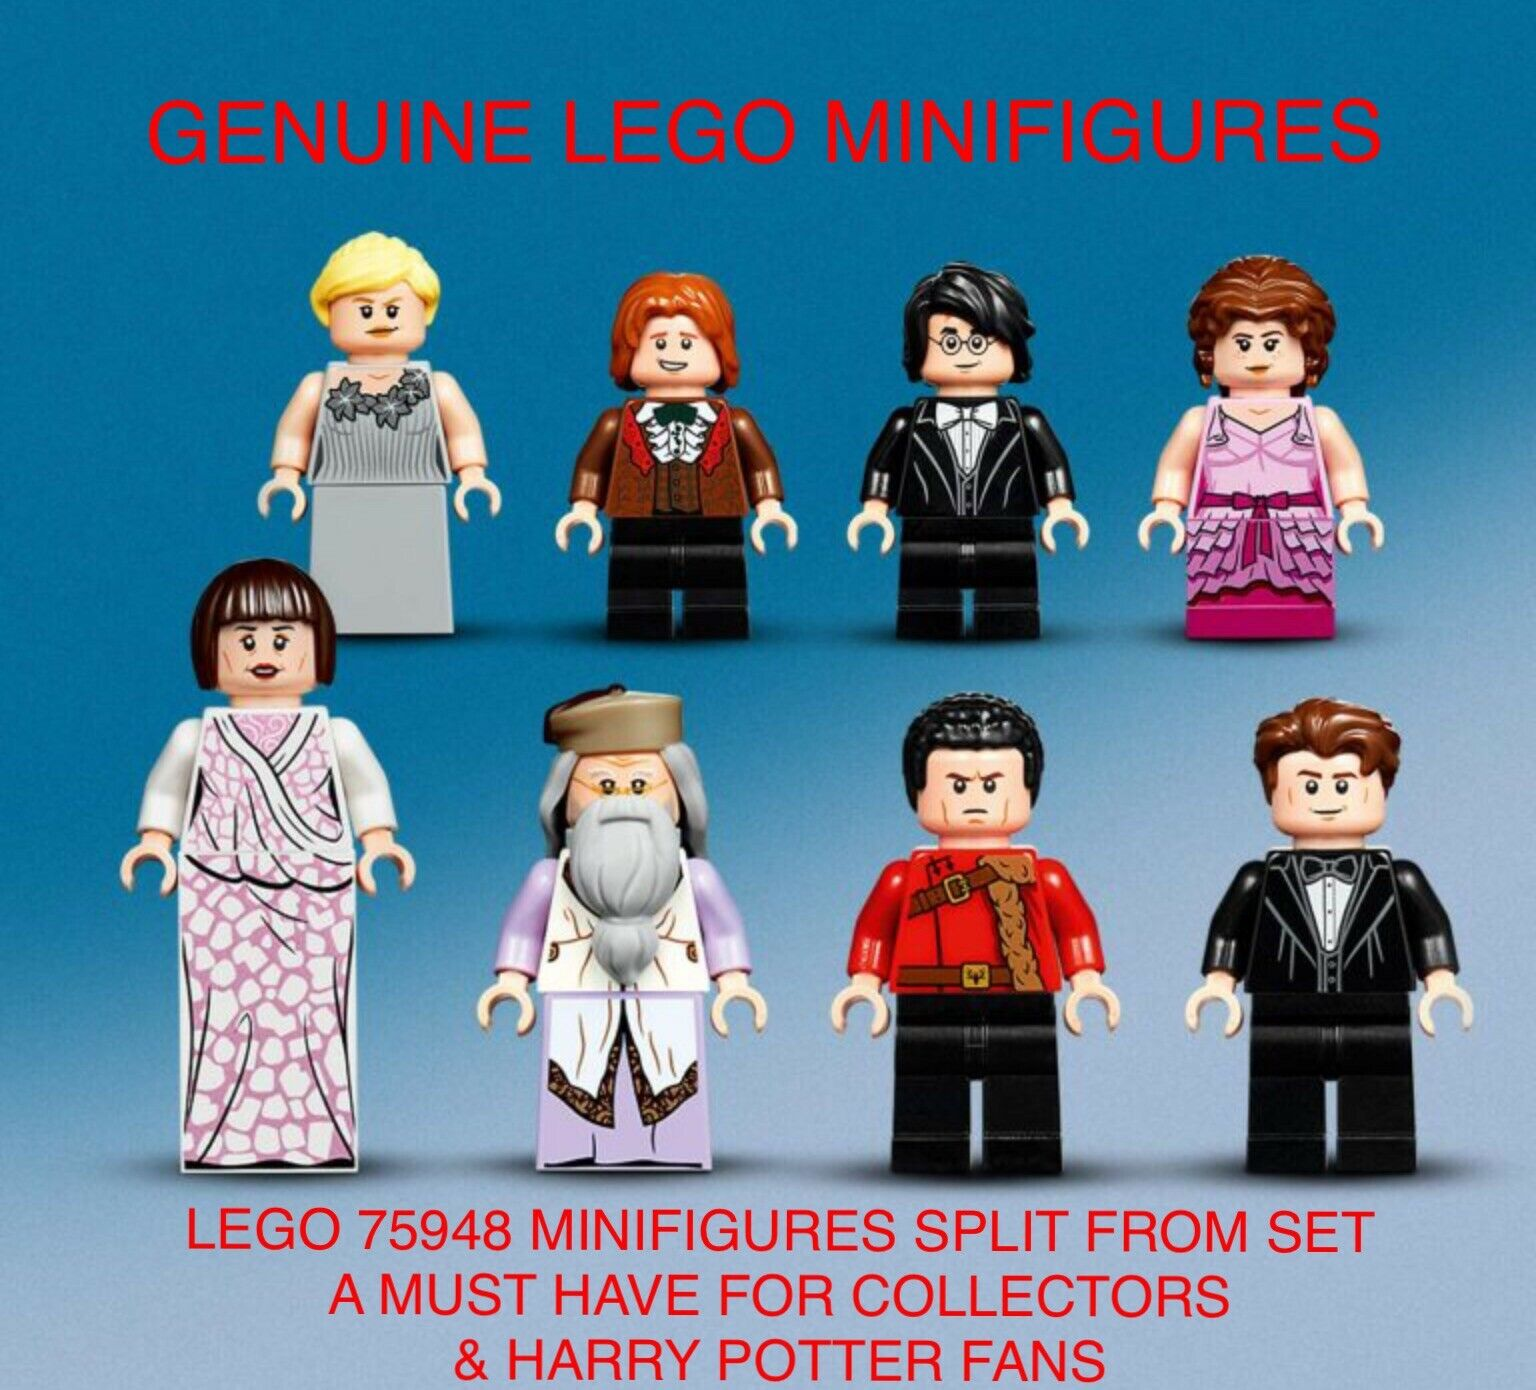 8 X LEGO MINIFIGURES SPLIT FROM SET 75948 - HARRY POTTER. B NEW. MUST HAVE. (Z)